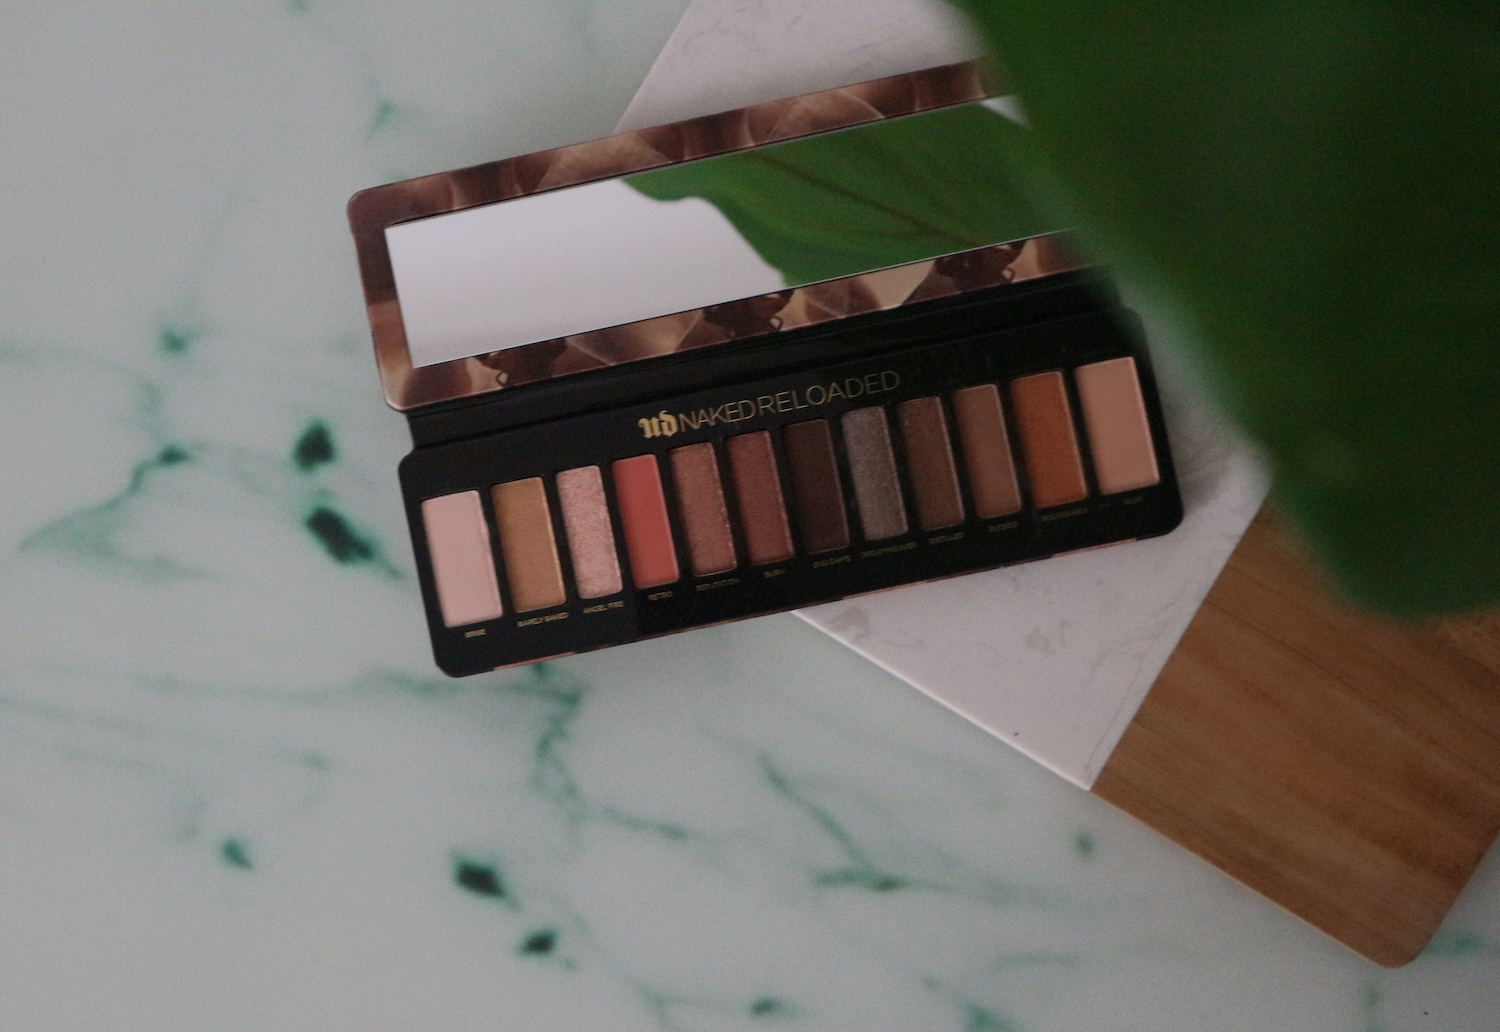 URBAN DECAY NAKED RELOADED EYESHADOW PALETTE REVIEW | BEAUTY